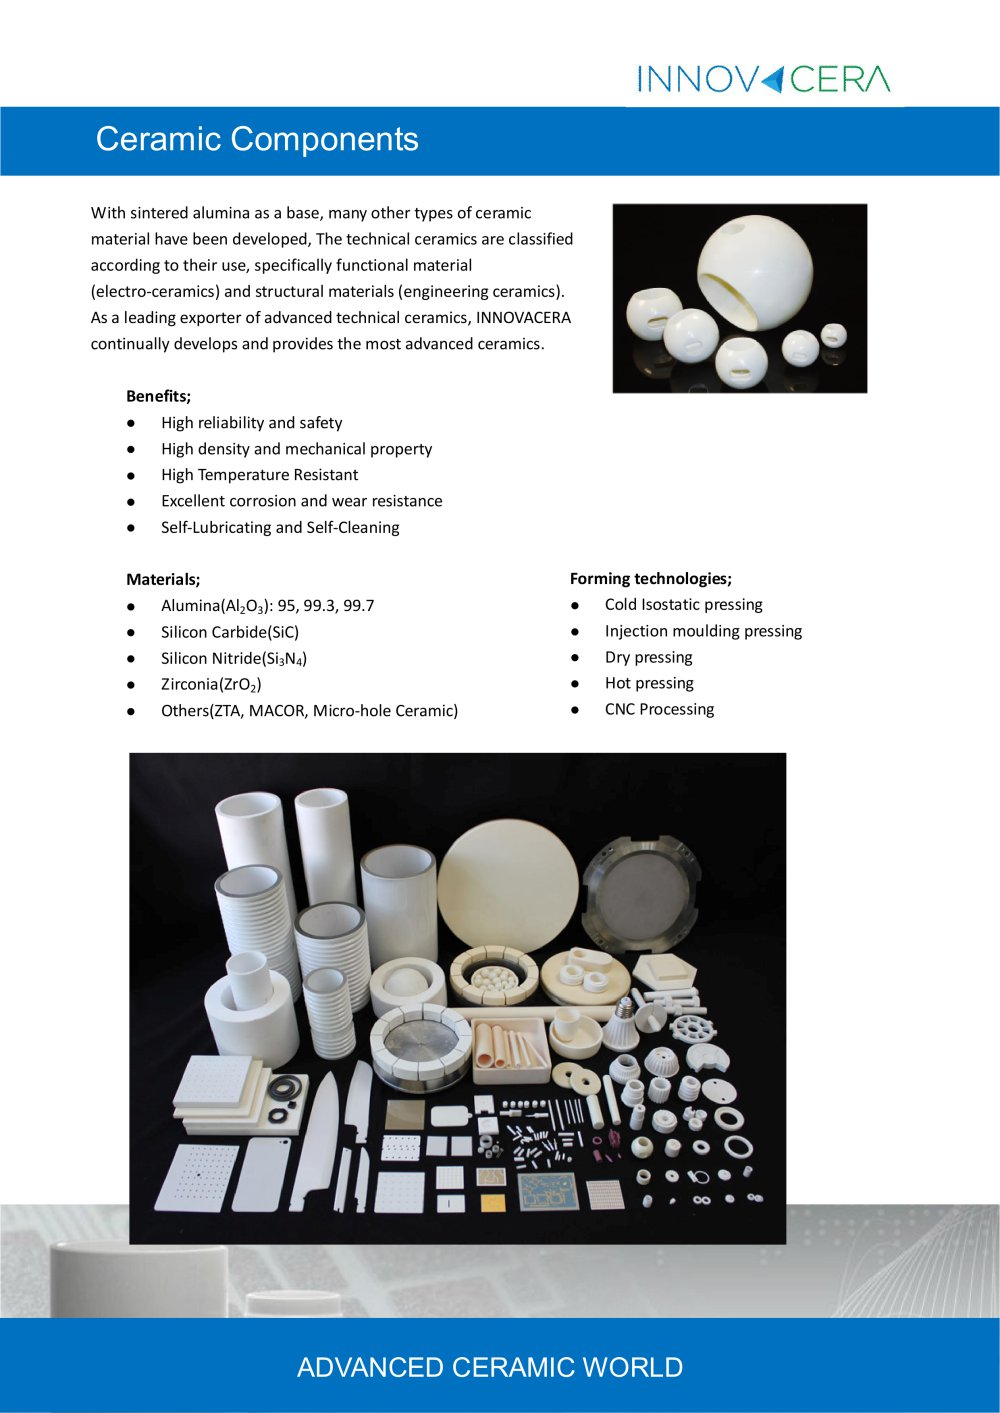 Innovacera Ceramic Components - 1 / 4 Pages